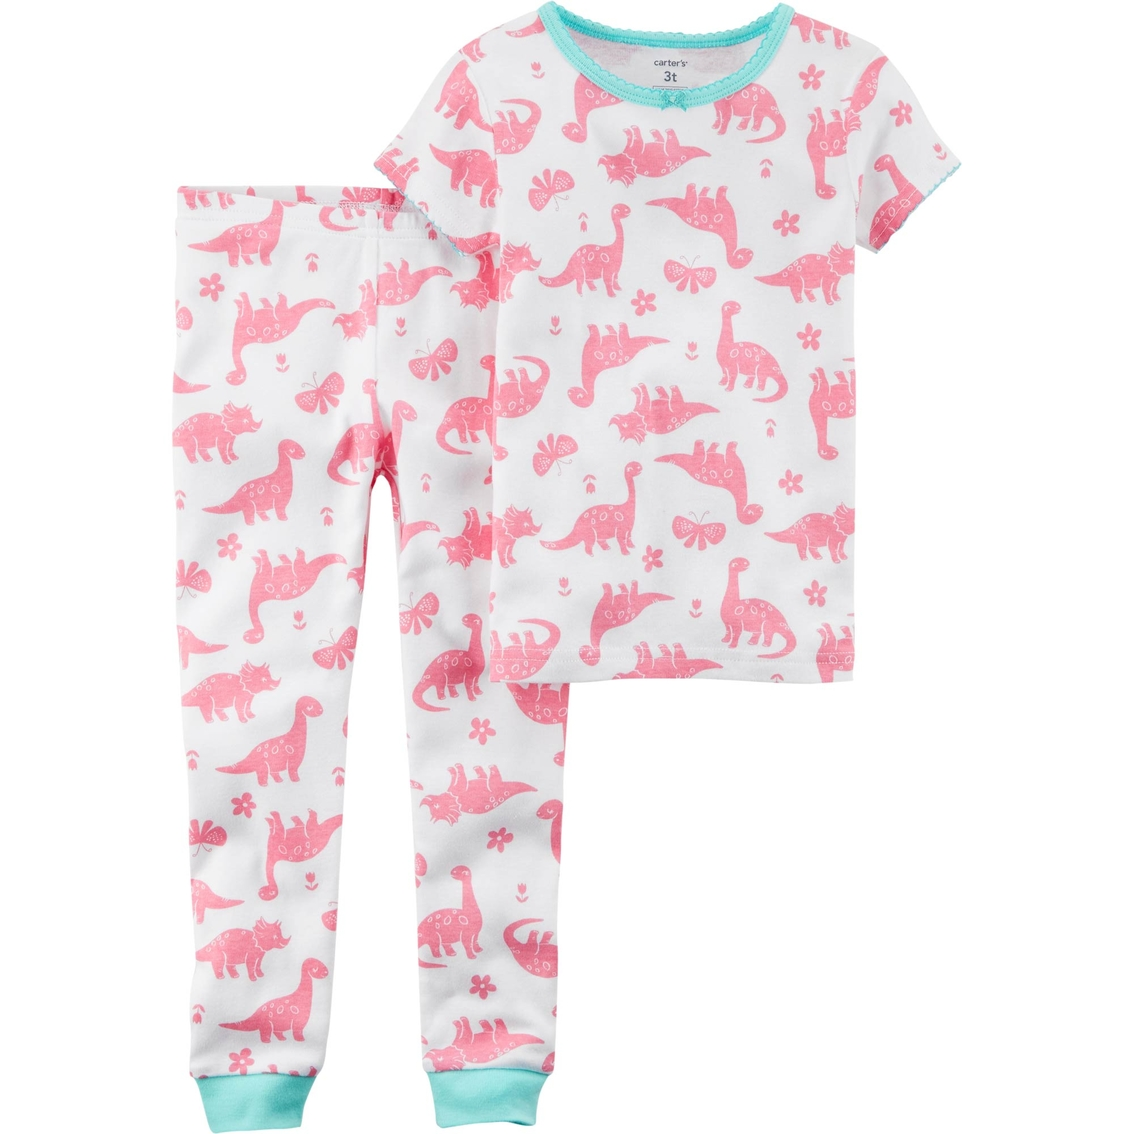 15ebaab64c Carter s Toddler Girls 2 Pc. Dinosaur Snug Fit Cotton Pajama Set ...